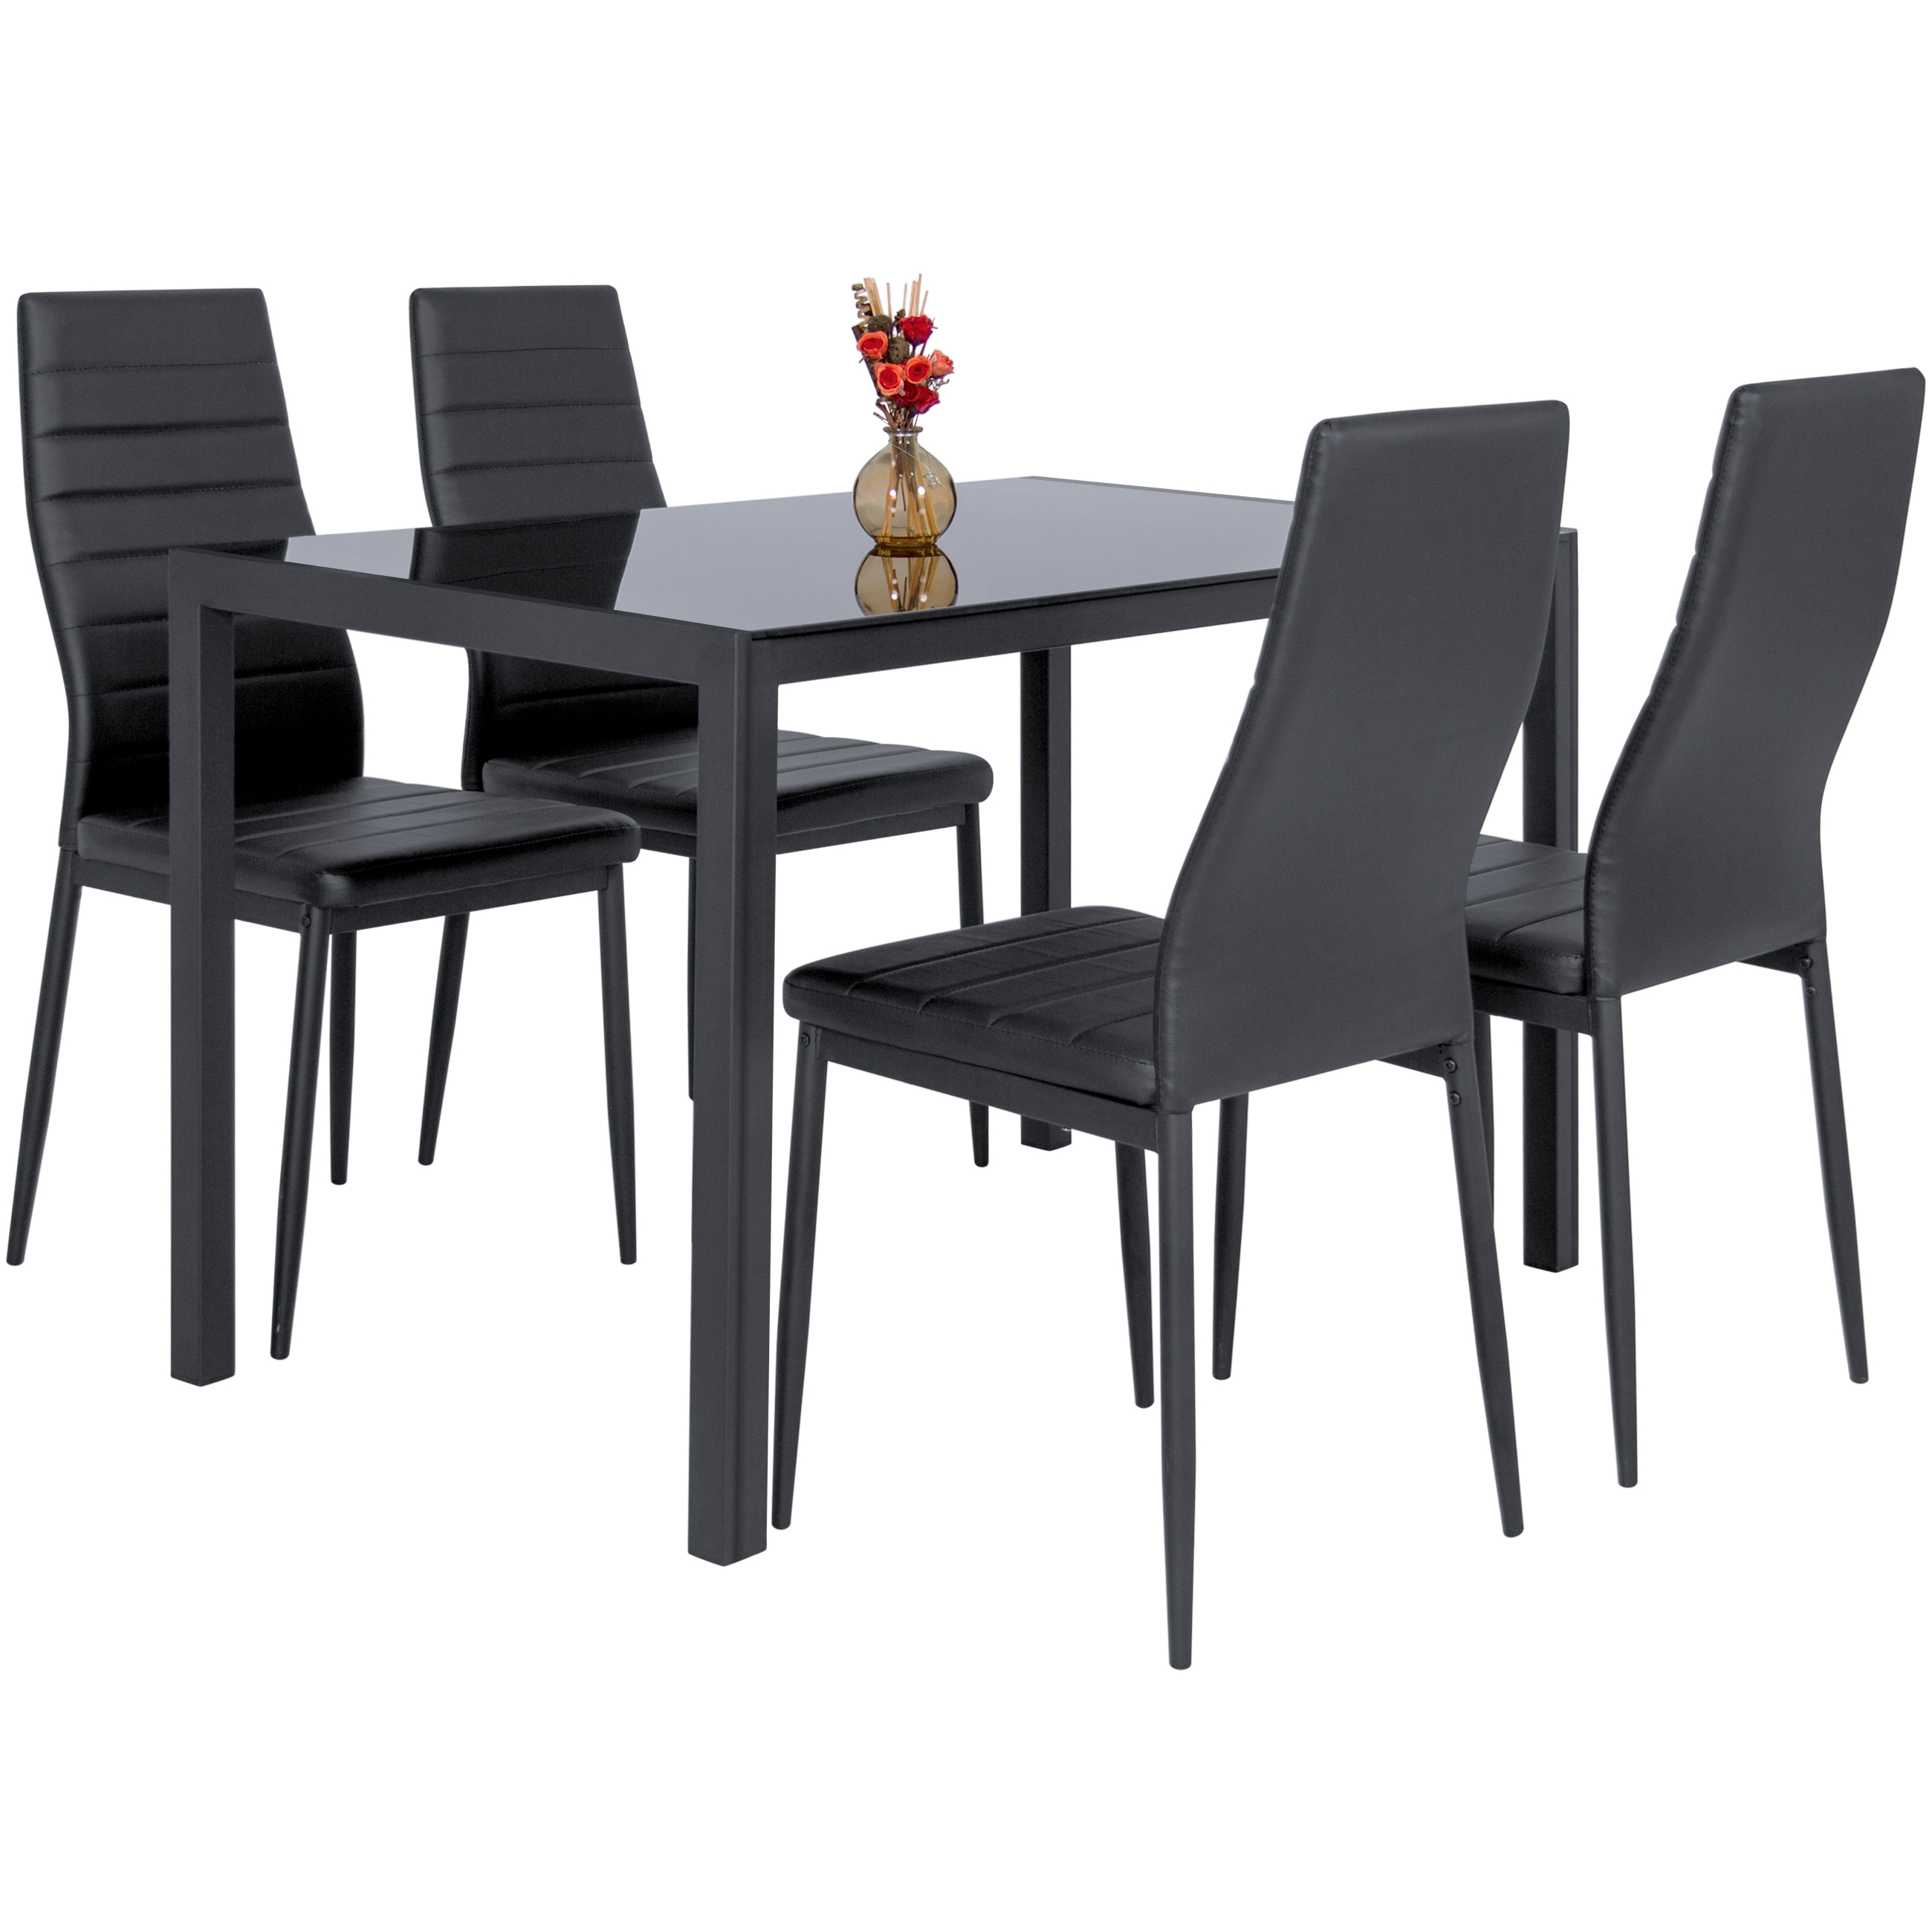 5pc Set Round Dinette Kitchen Table W 4 Microfiber: 5 Piece Kitchen Dining Table Set W Glass Top And 4 Leather